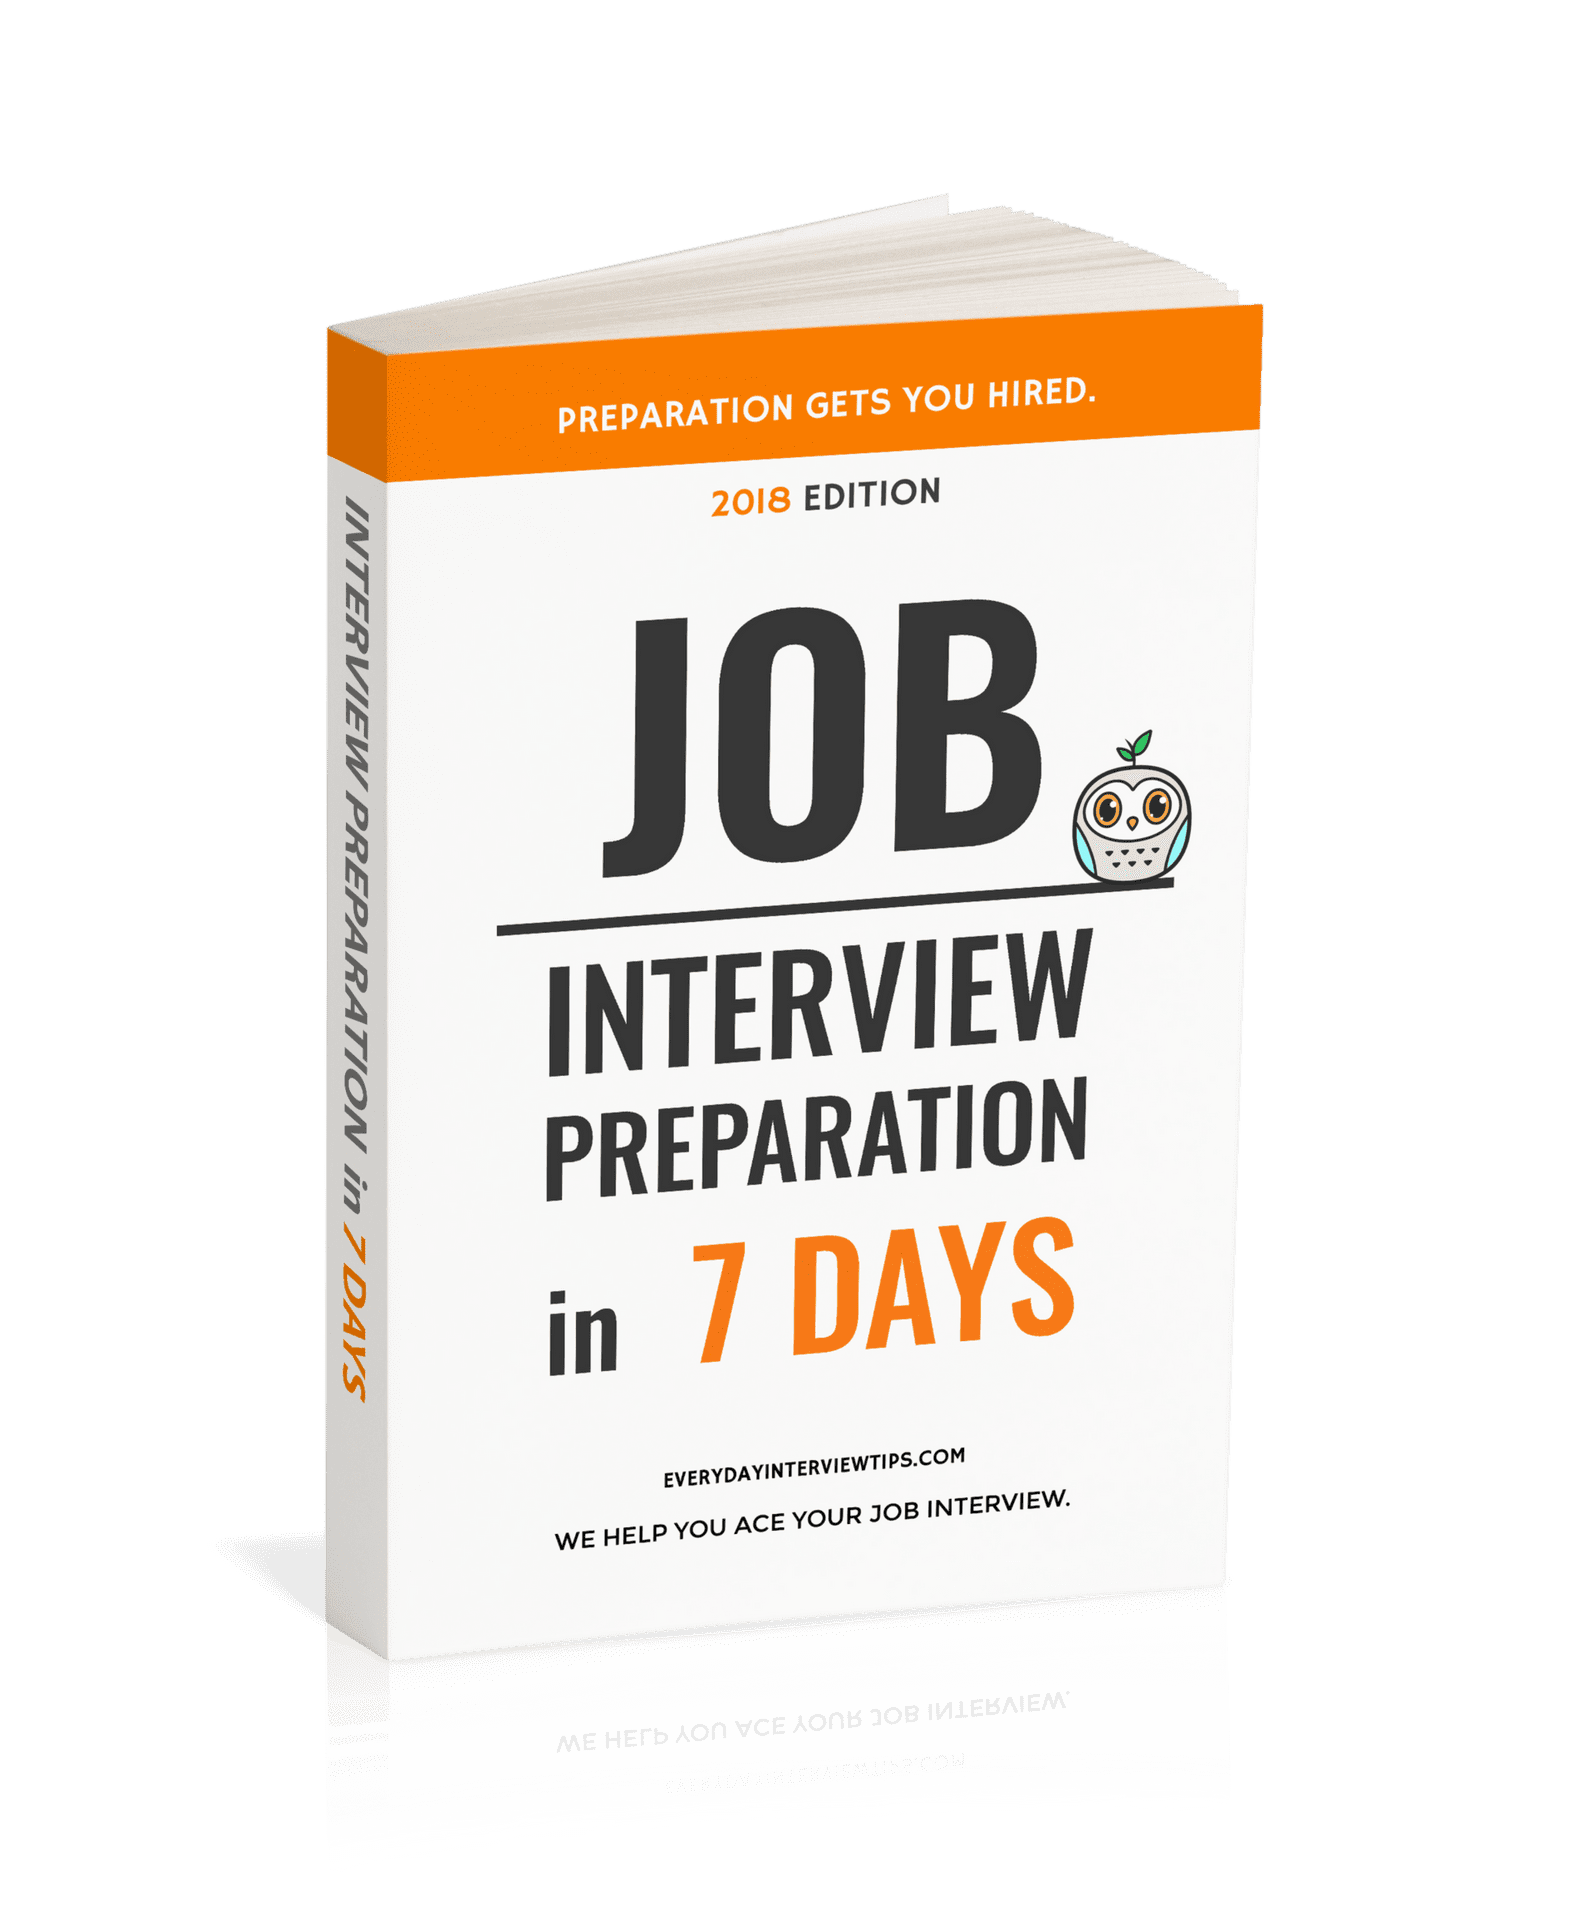 job interview preparation in 7 days